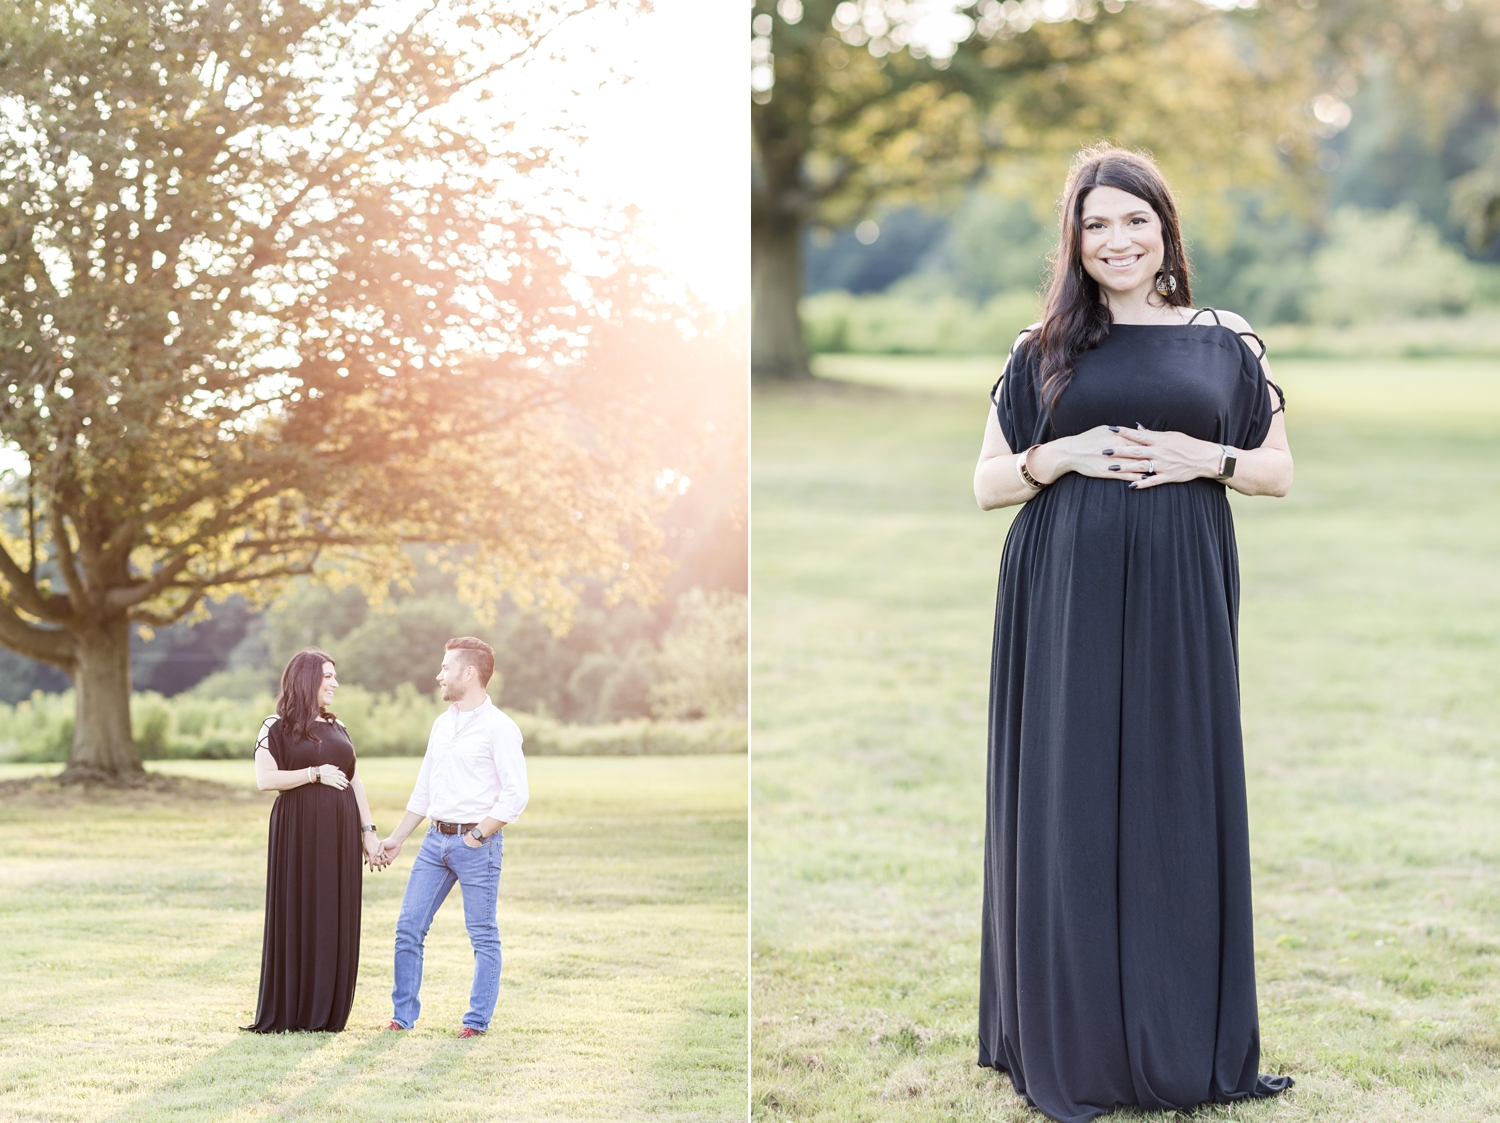 Saunders-Consroe Maternity-66_Cromwell-Valley-Park-Maryland-maternity-photographer-anna-grace-photography-photo.jpg